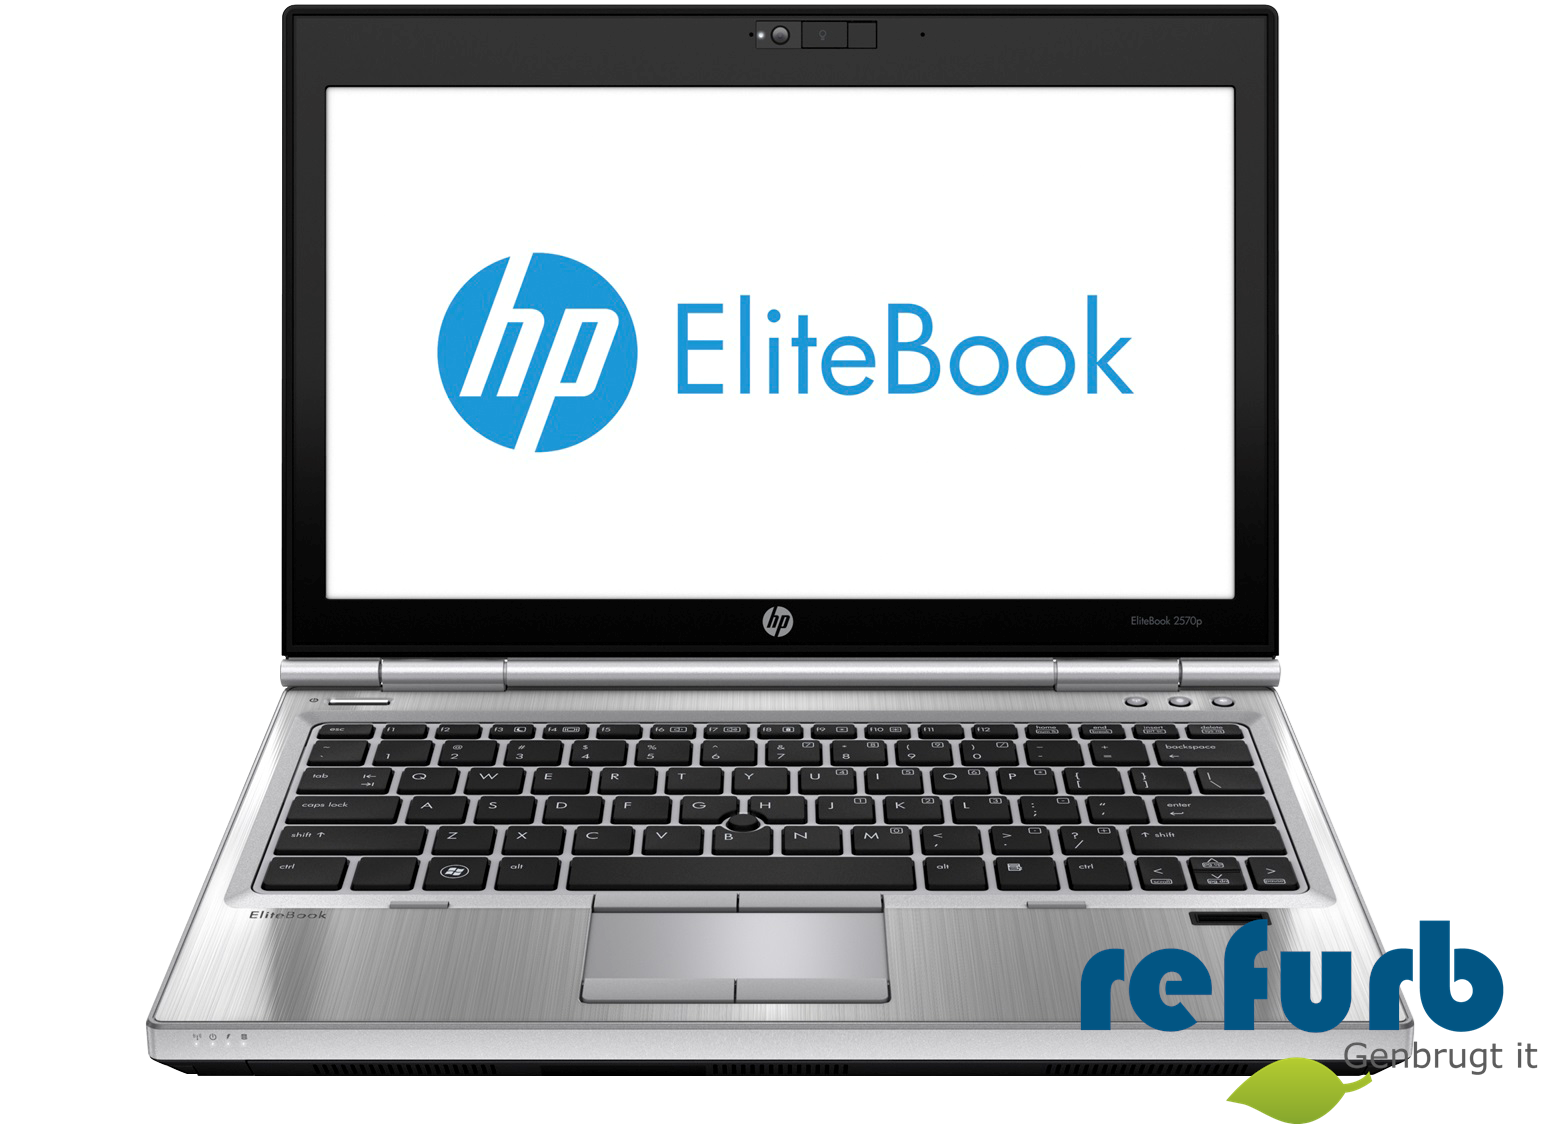 Hp elitebook 2570p fra Hp på refurb